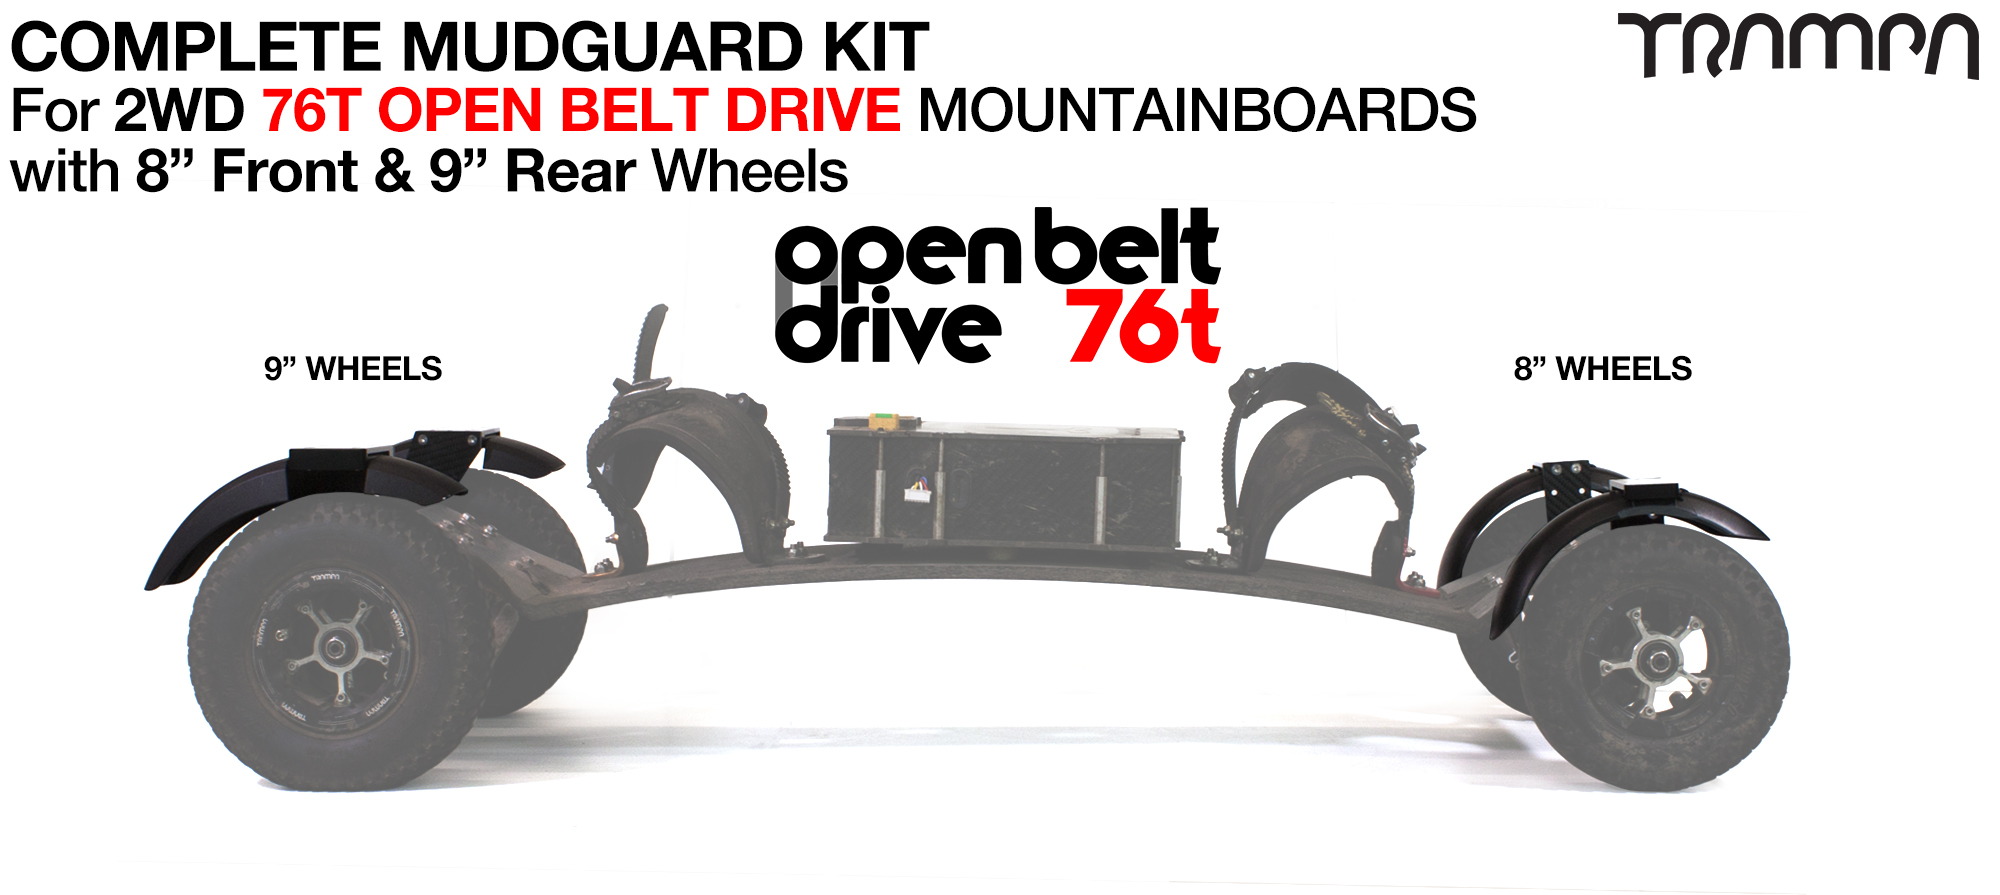 "Full Mudguard Kit for 2WD 76T OPEN BELT DRIVE Mountainboards - 8"" & 9"" Wheels"